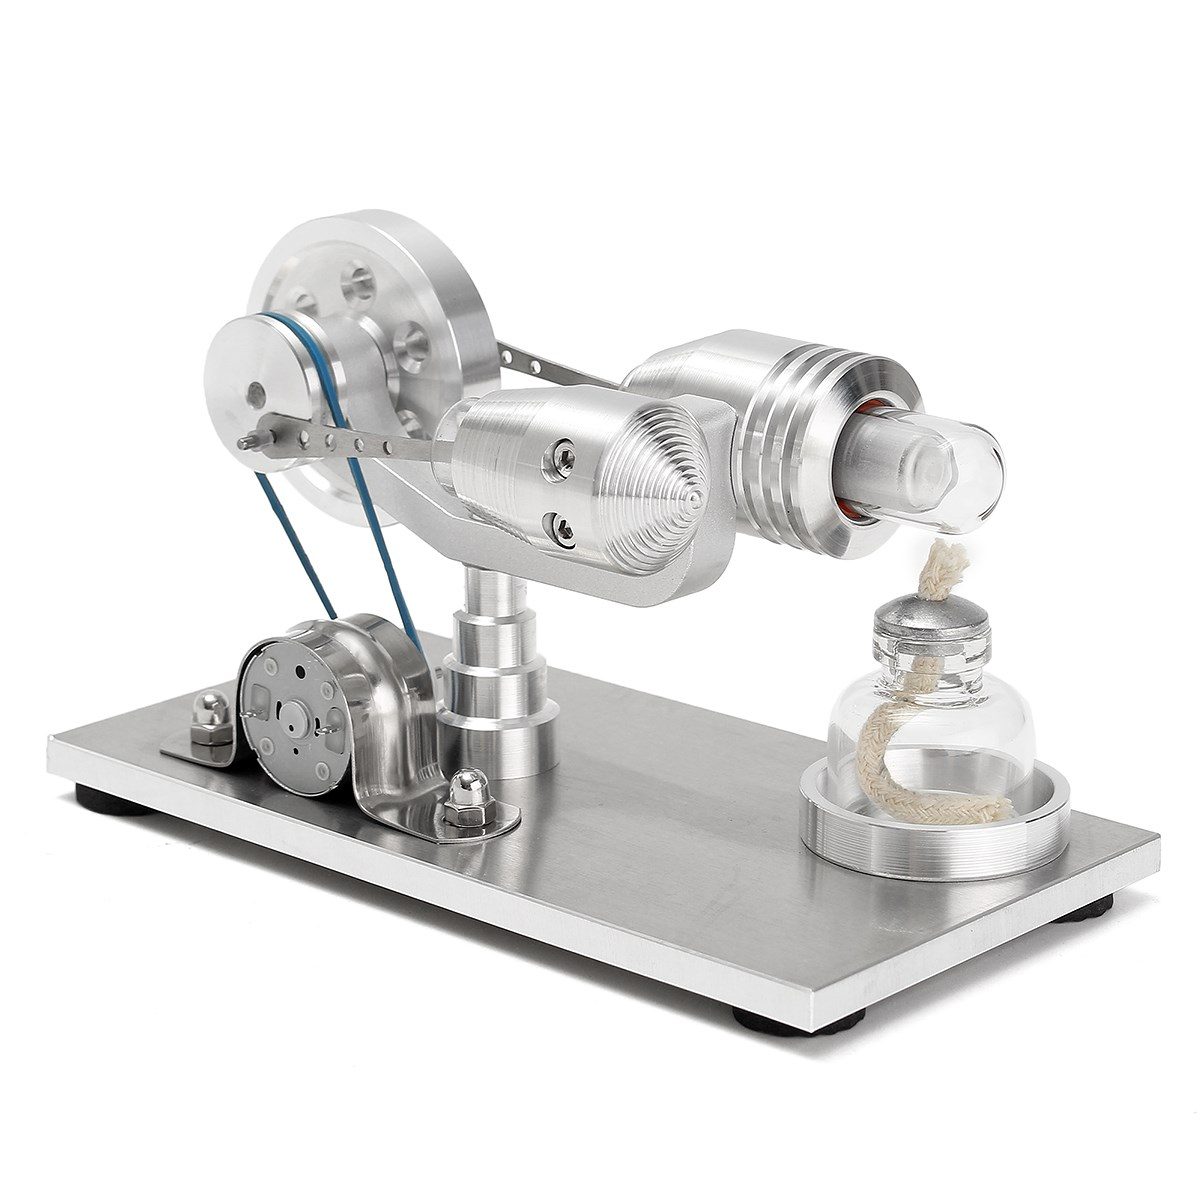 New Arrival Stainless steel Mini Hot Air Stirling Engine Motor Model Educational Toy Science Experiment Kit Set For Chuldren jiangdong engine parts for tractor the set of fuel pump repair kit for engine jd495